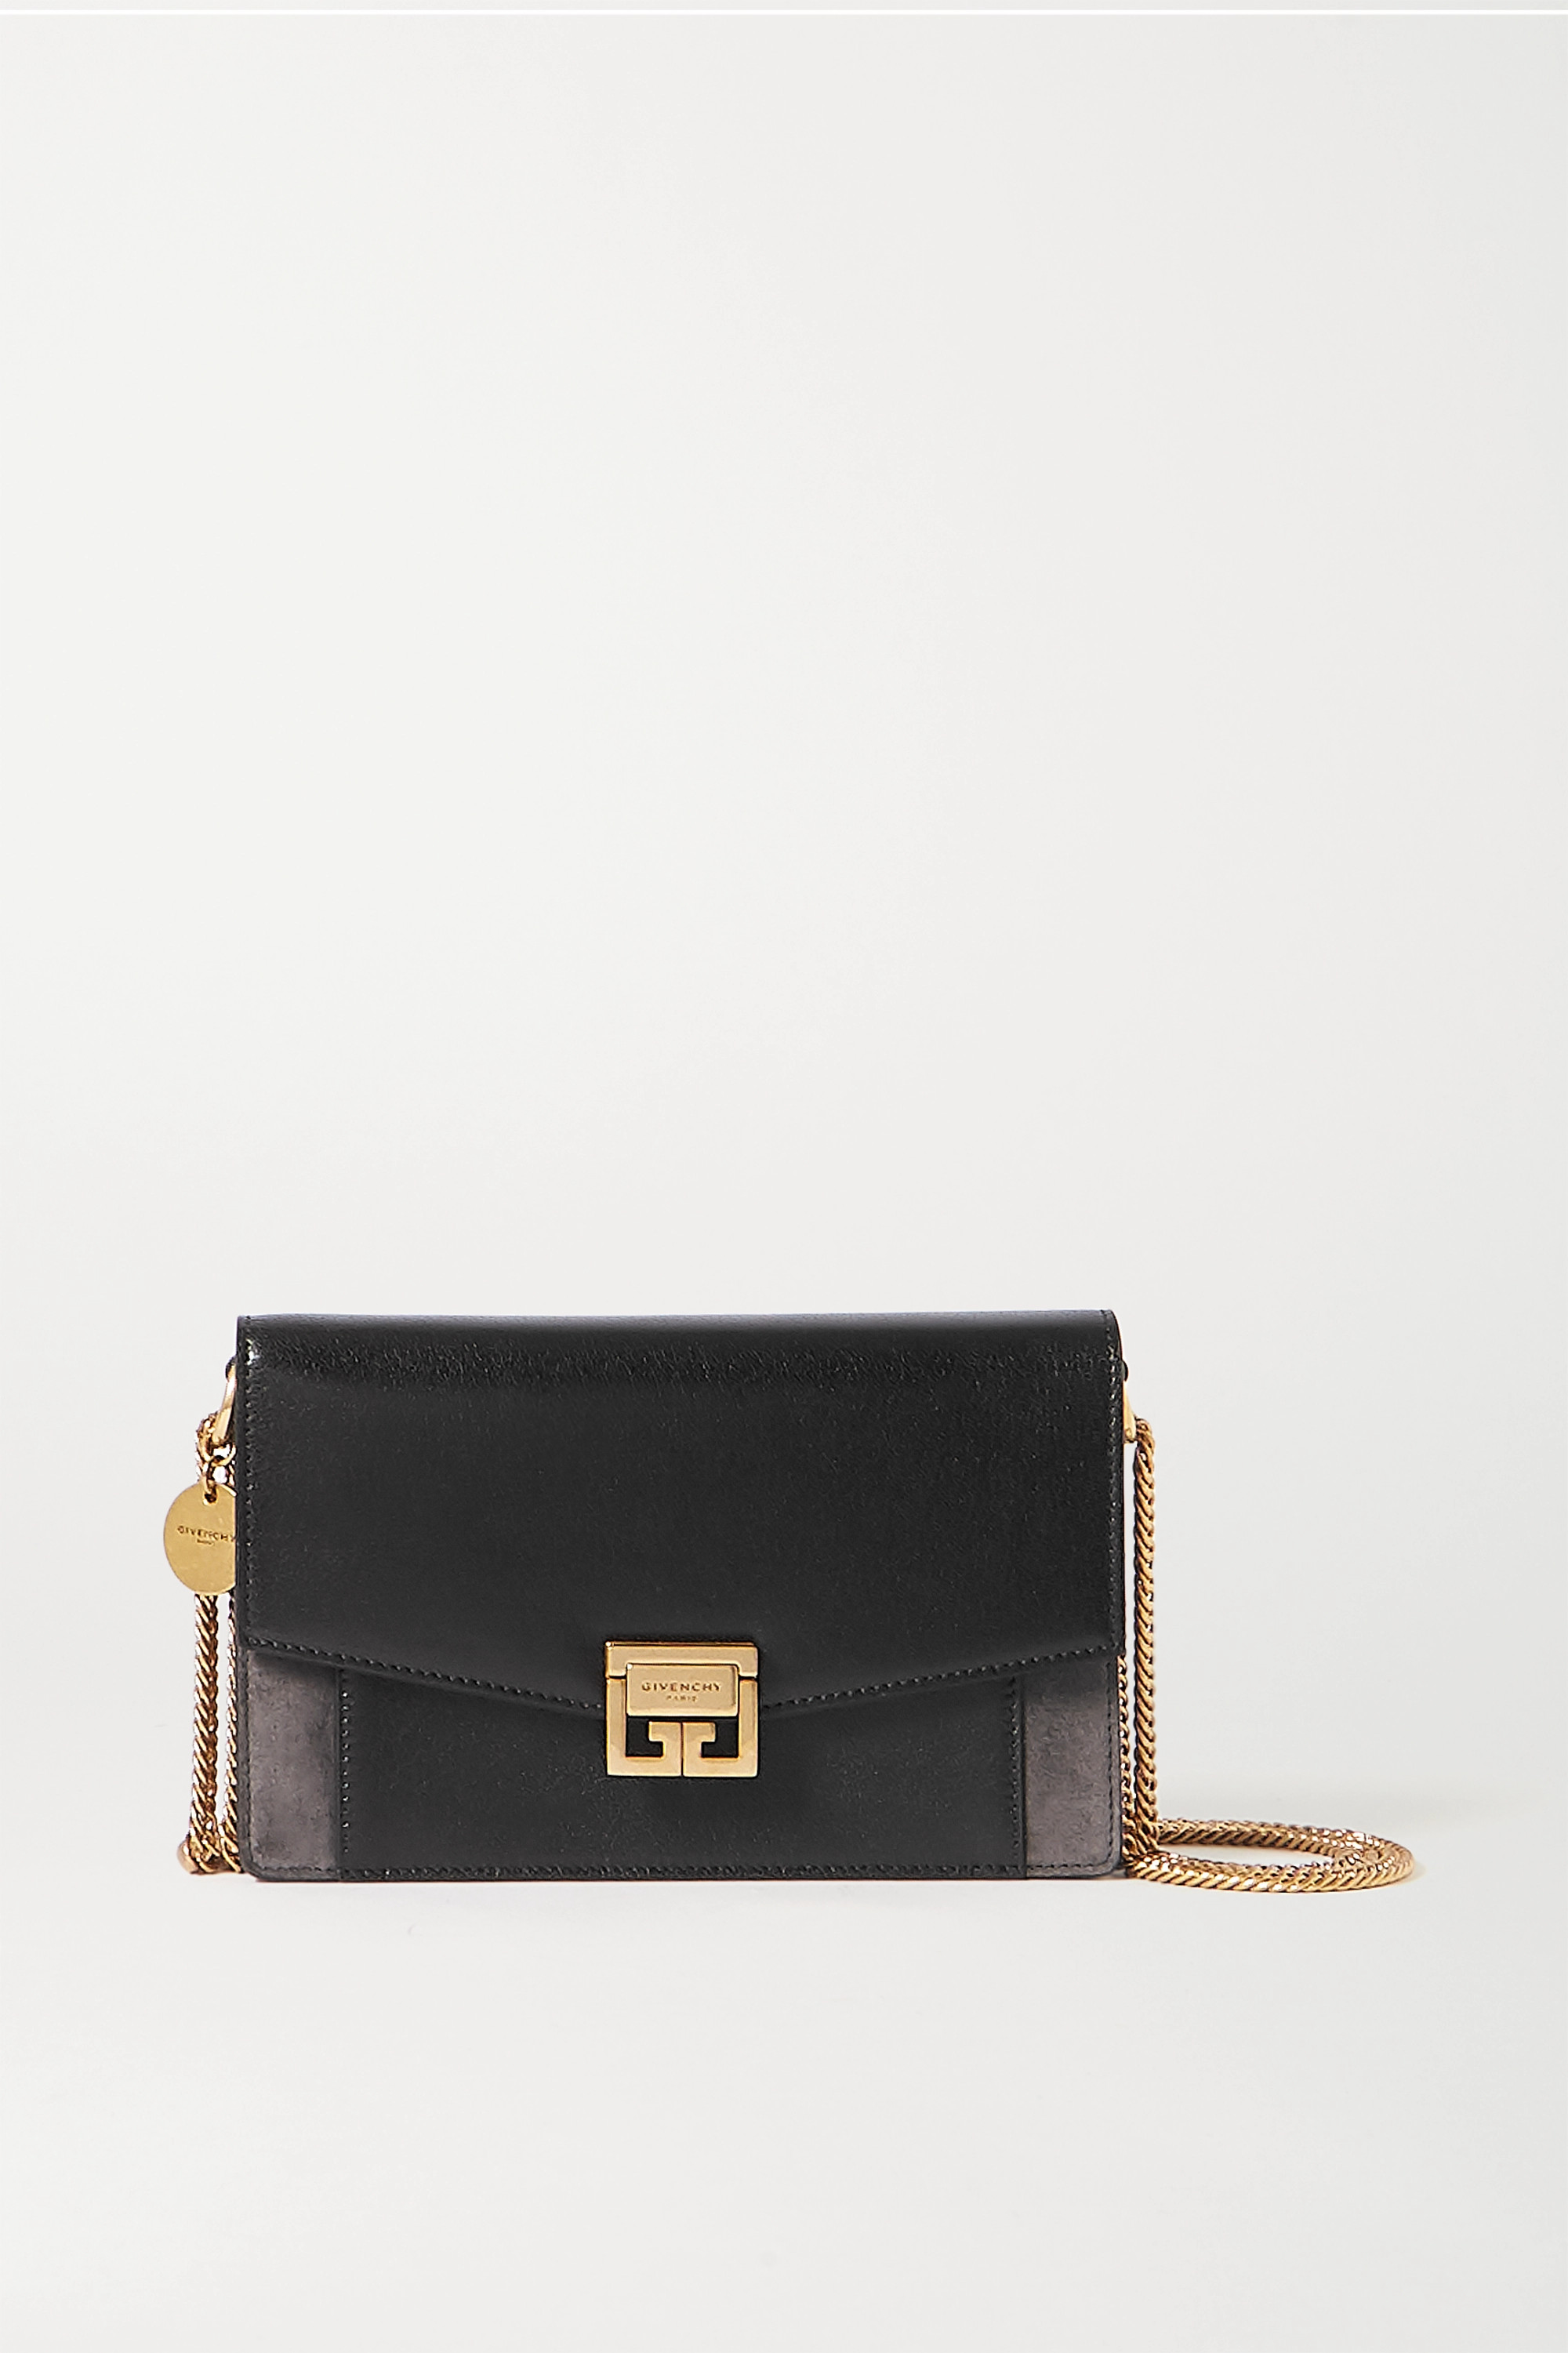 Givenchy GV3 textured-leather and suede shoulder bag